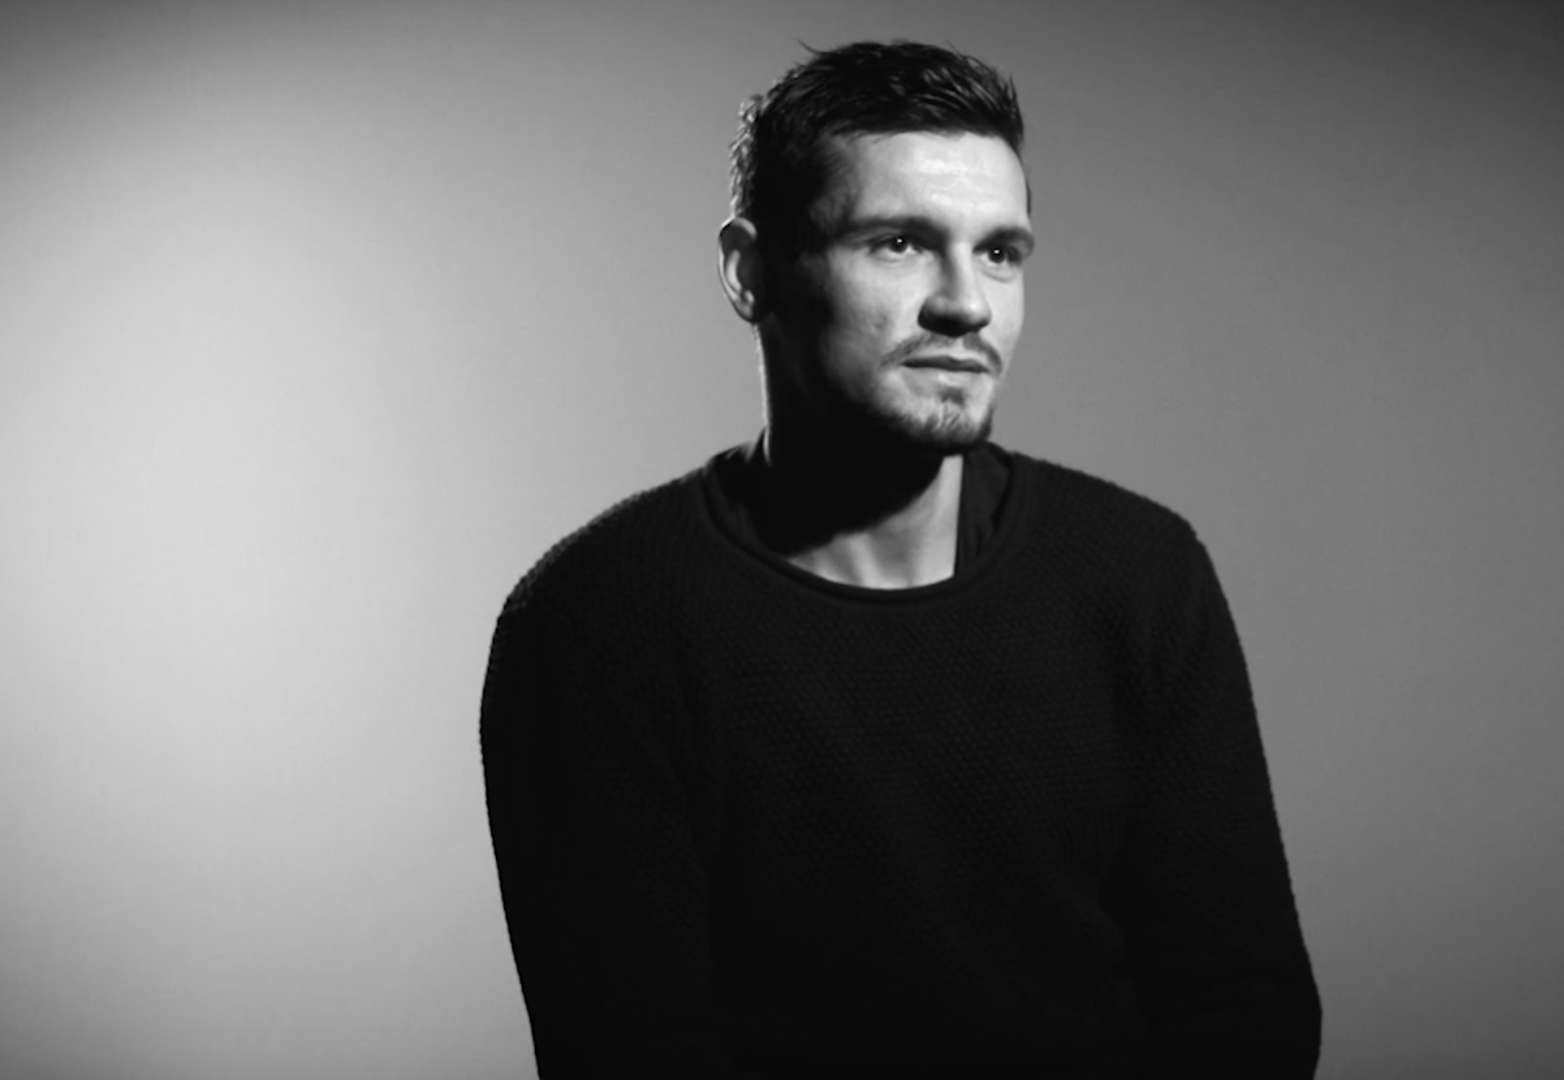 Lovren: My Life as a Refugee